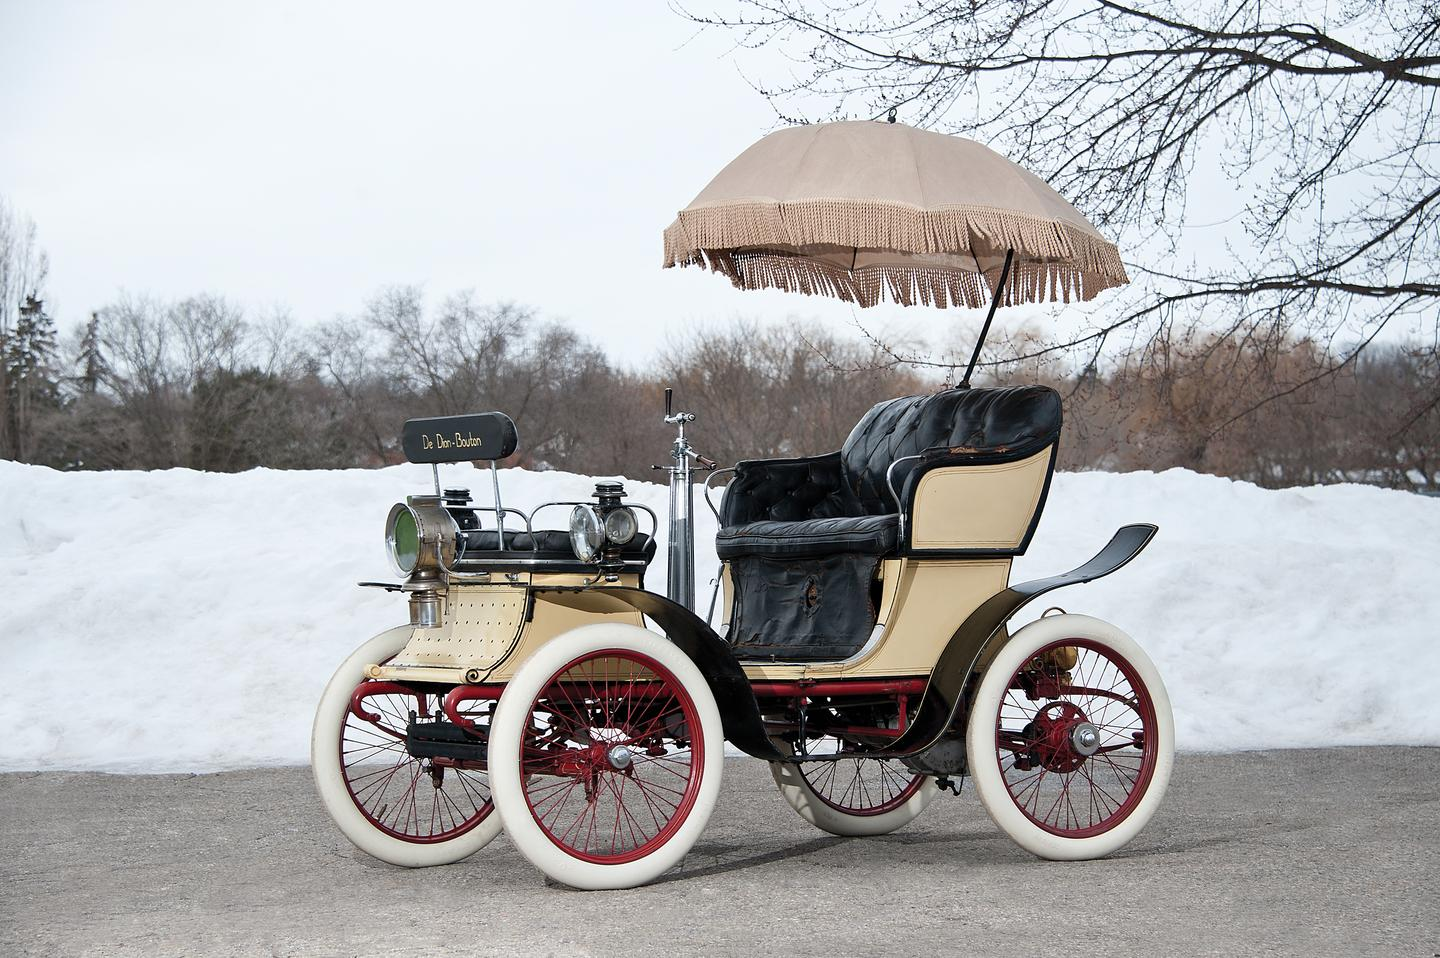 A group of entrepreneurs set up the De Dion-Bouton Motorette Company in New York in 1900. This 1901 De Dion-Bouton is one of the very few surviving Brooklyn-built New York Type Motorettes